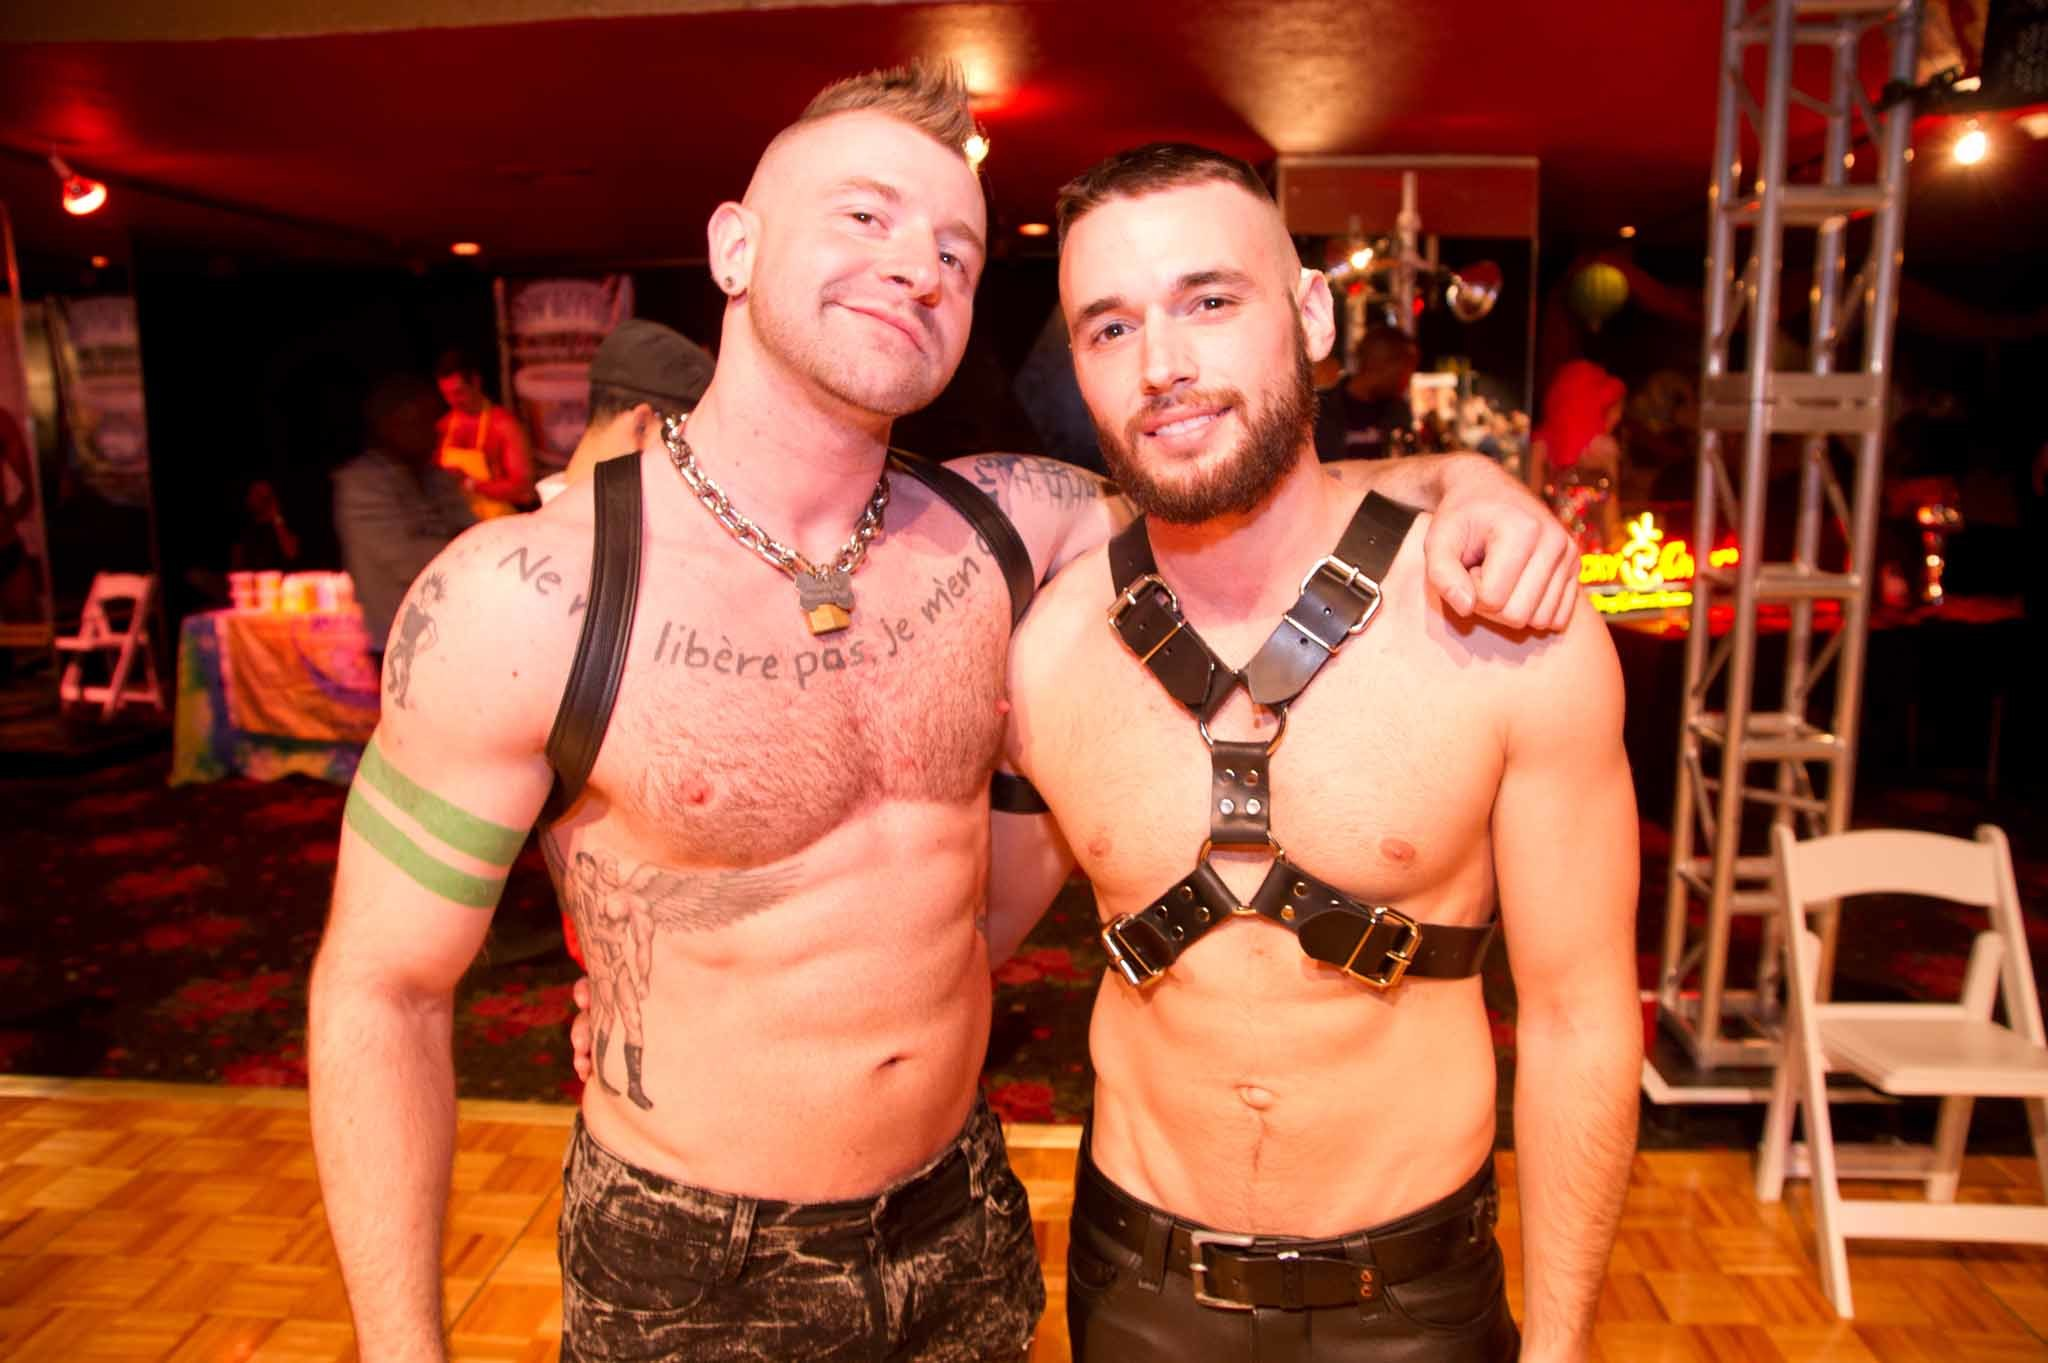 nyc in Paddles club bdsm